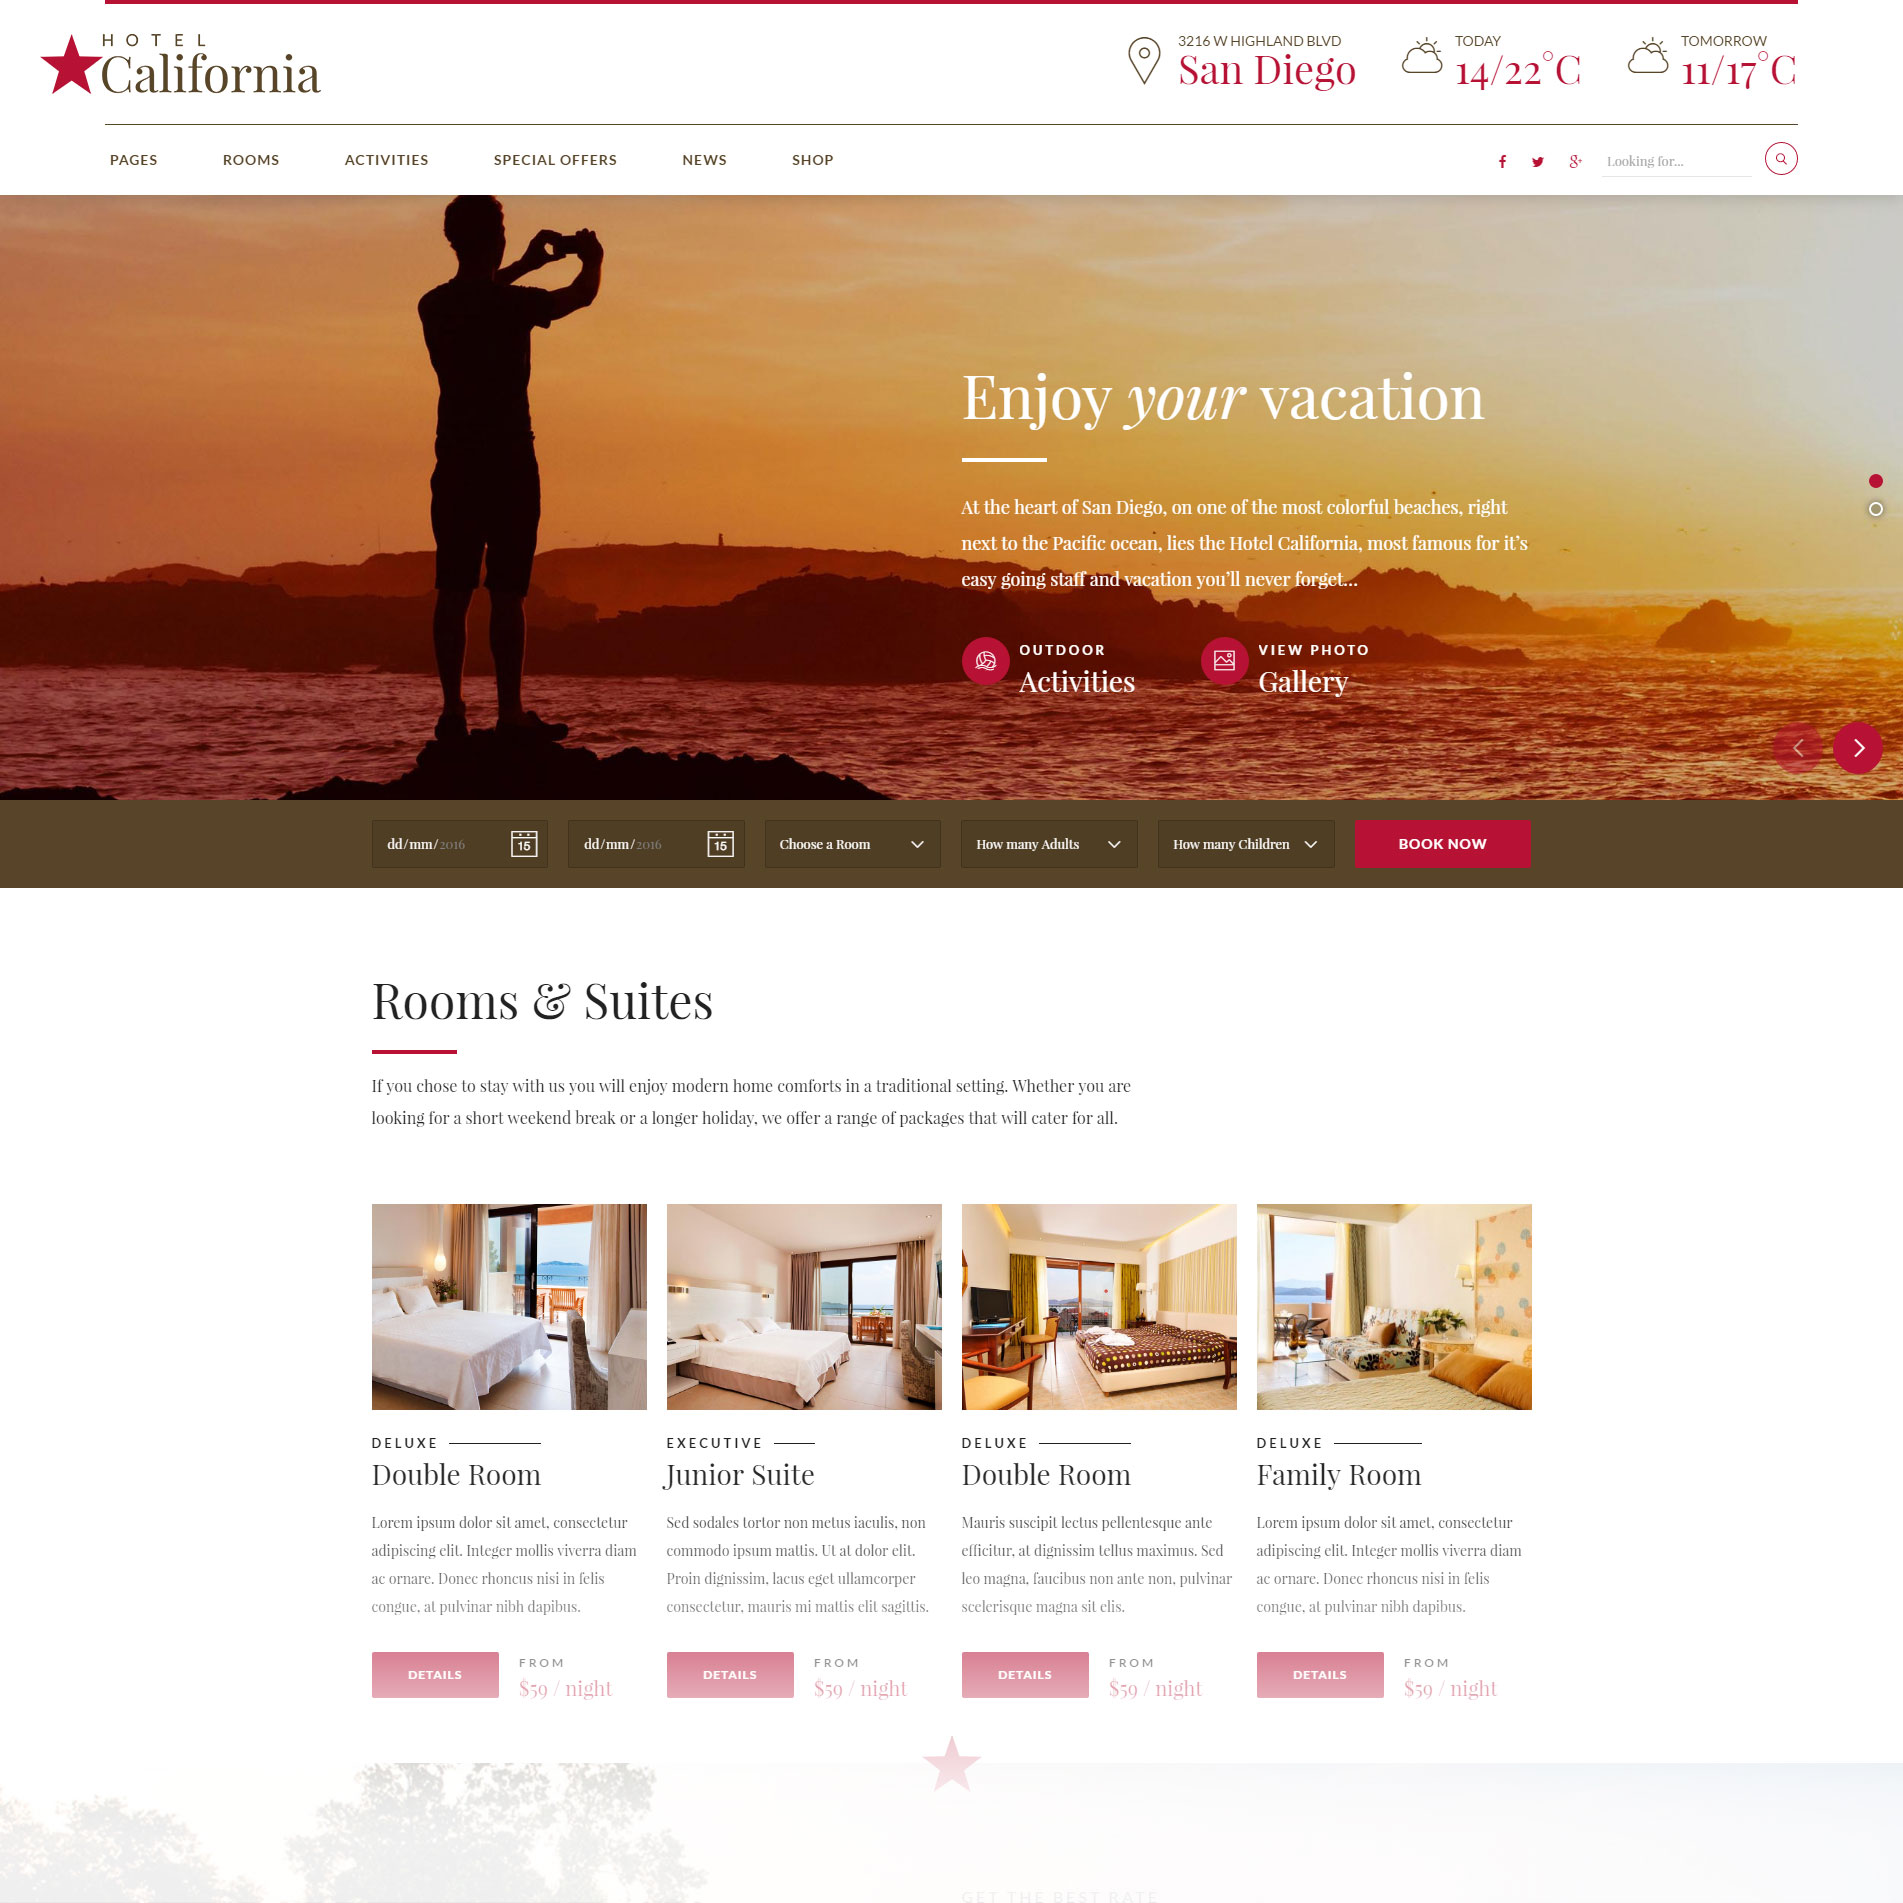 http://hotel.bold-themes.com/wp-content/uploads/2016/03/screenshot-01.jpg